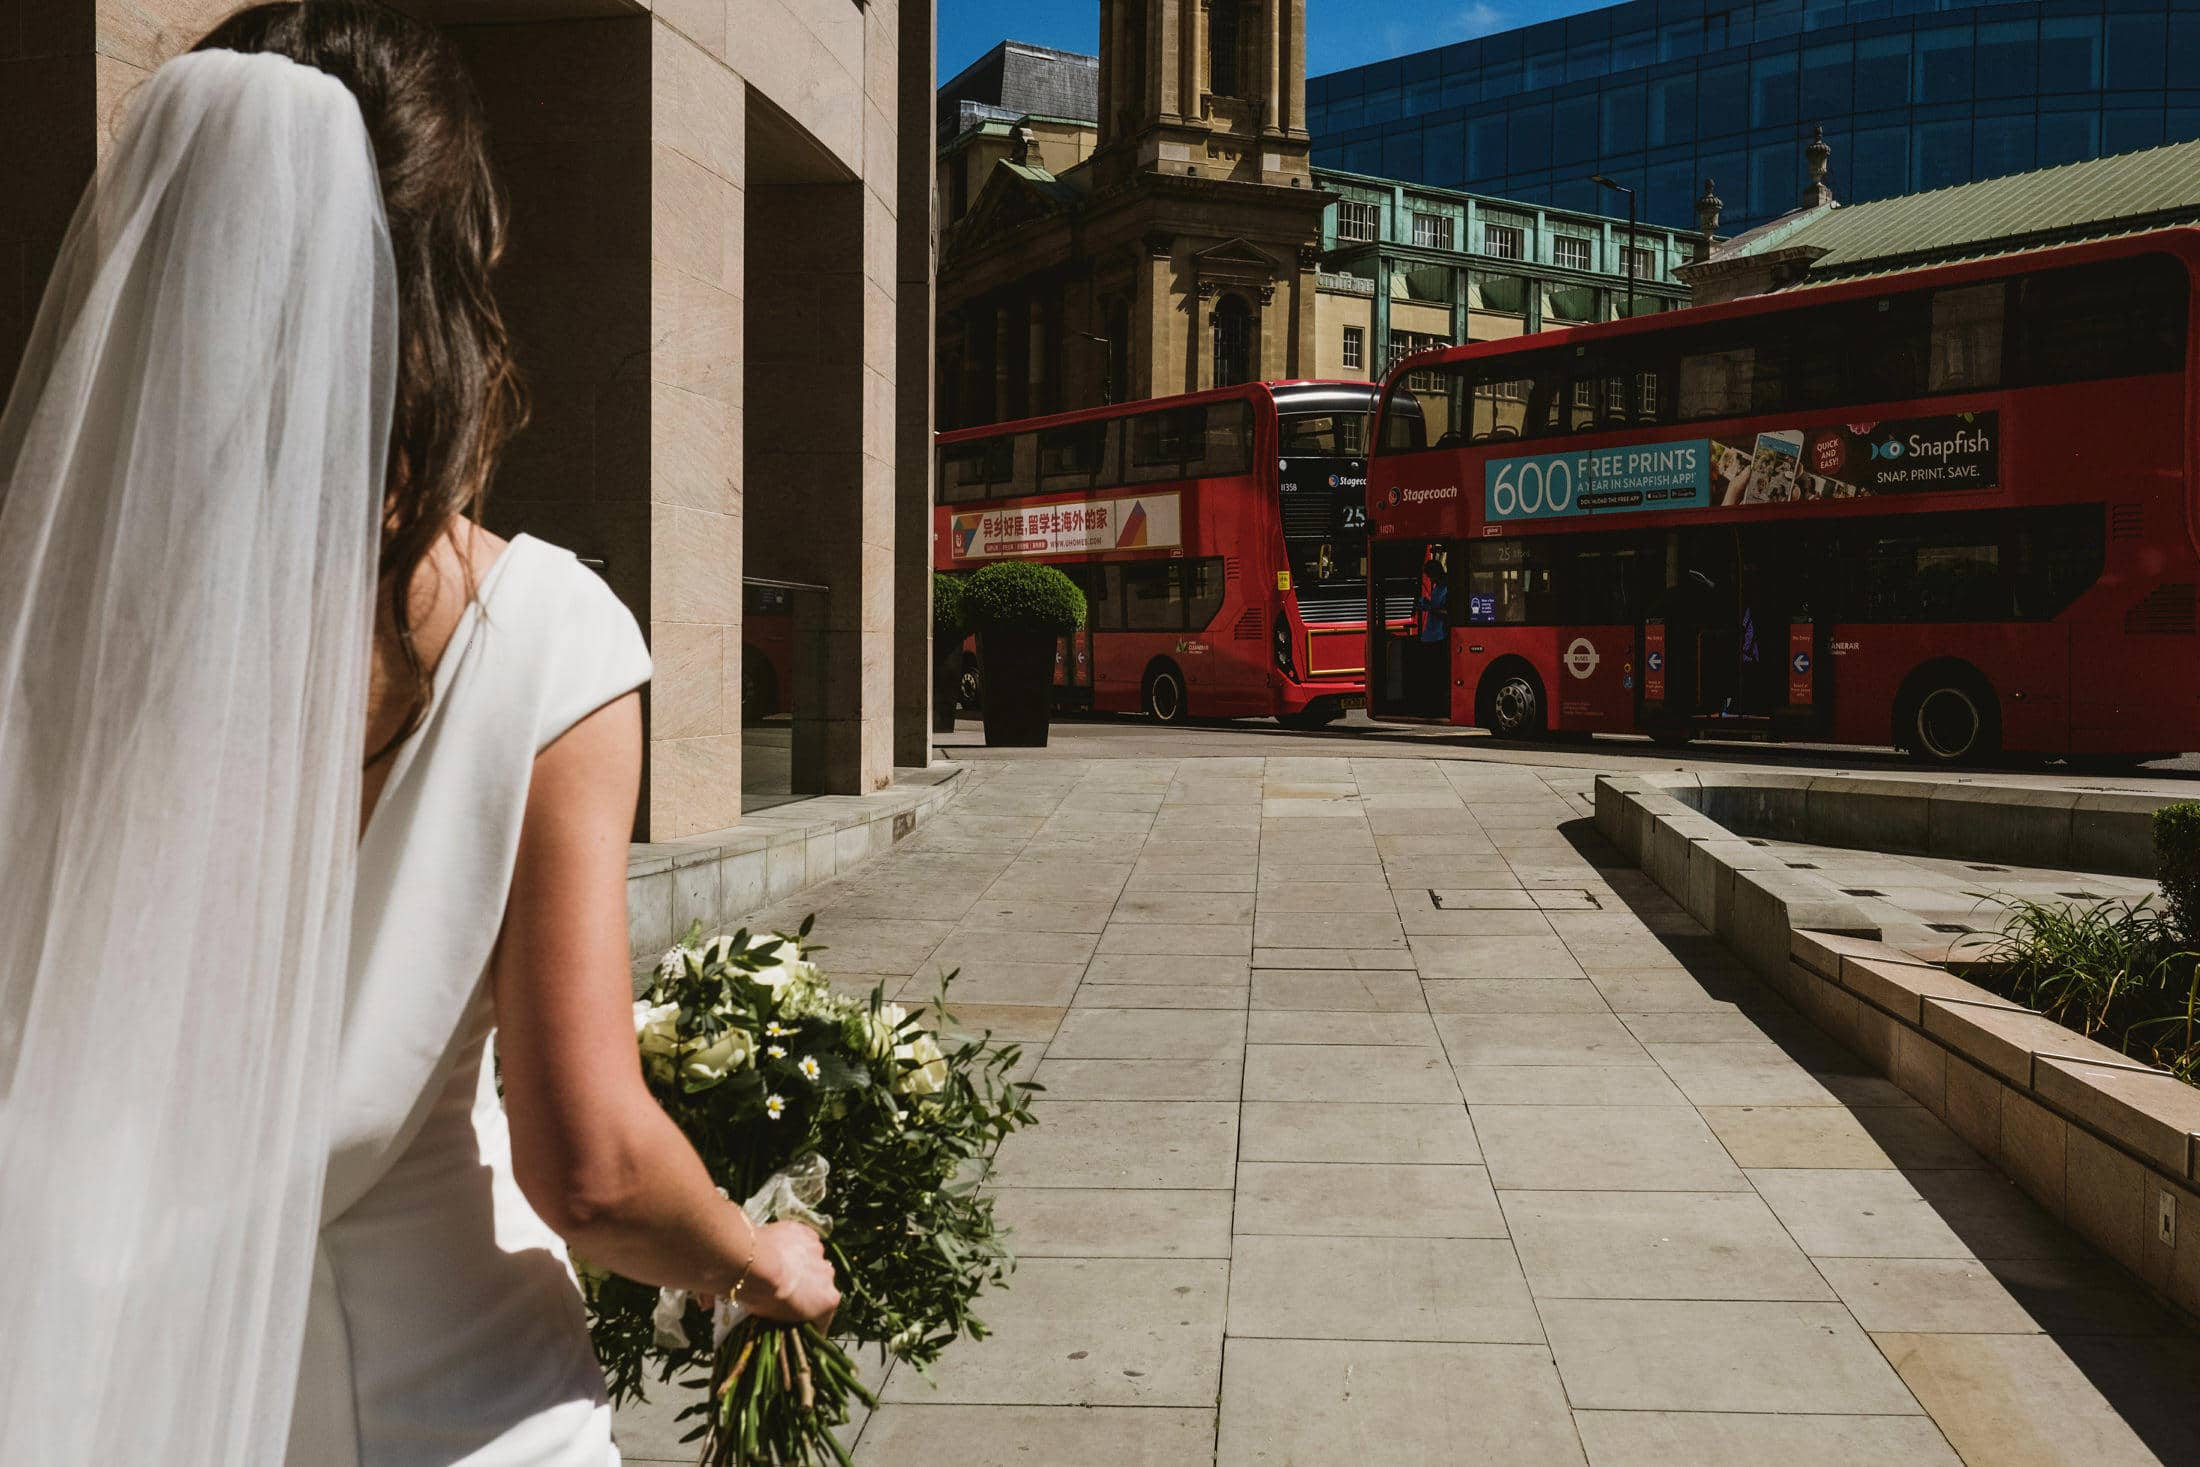 A bride walks down the street away from camera towards some London double-decker red buses. In her hand is her bouquet.